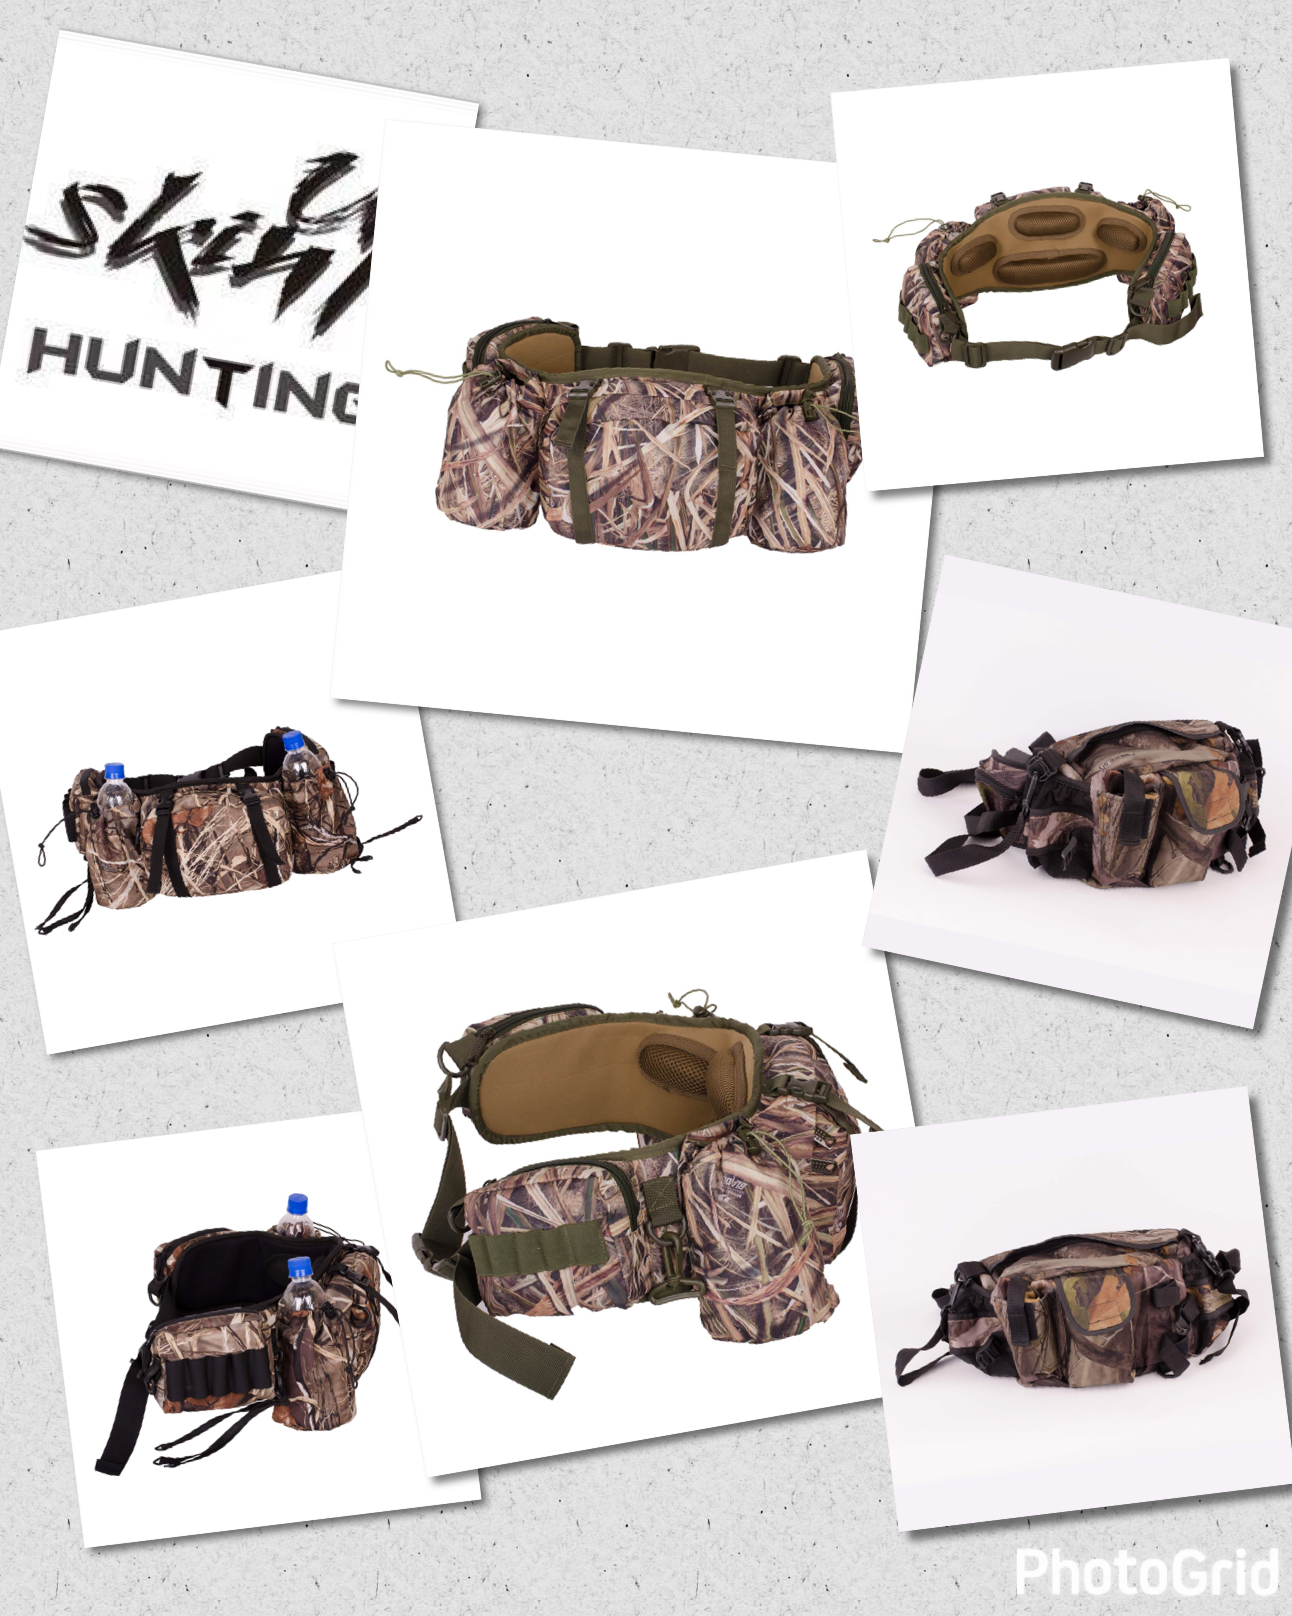 Hunting/Shooting/Outdoor Gear